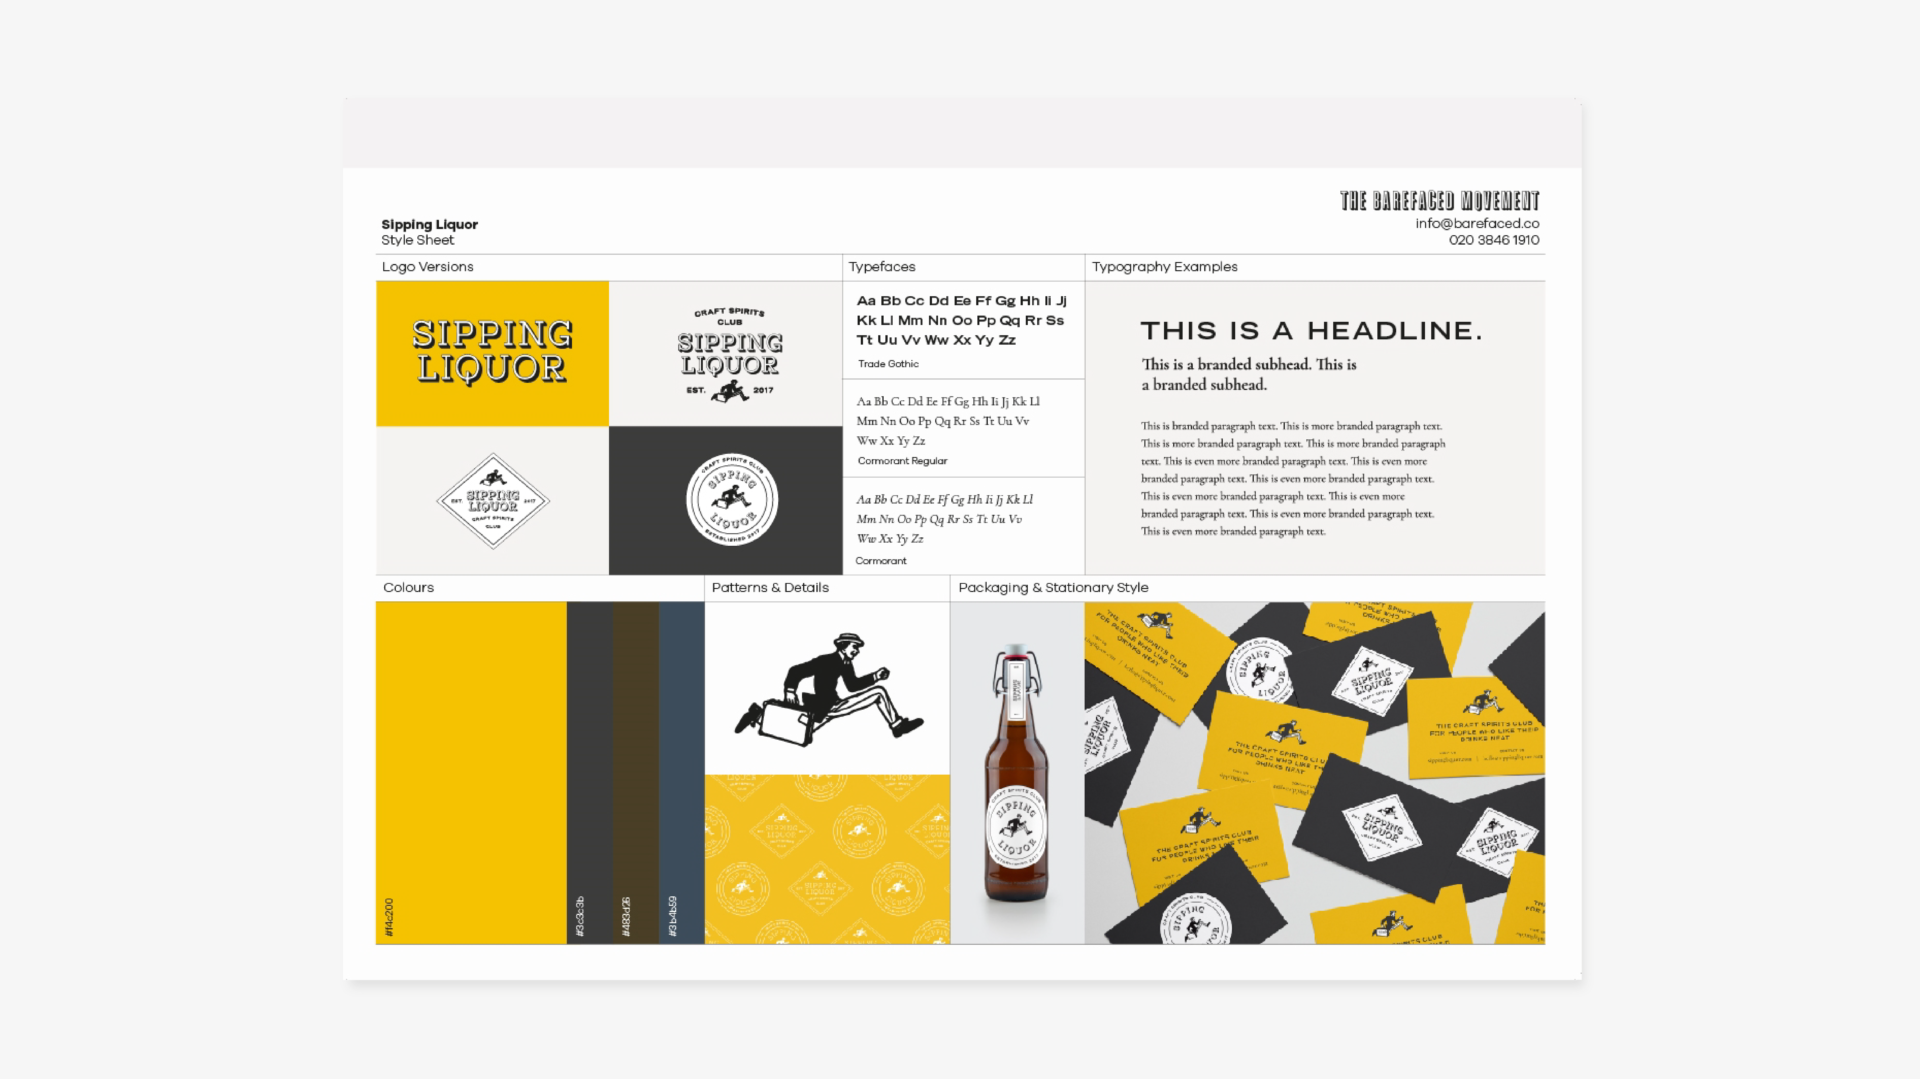 Stylesheet produced for Sipping Liquor- colours primarily yellow and black. Graphic design by Barefaced Studios, design agency based in Islington, North London.